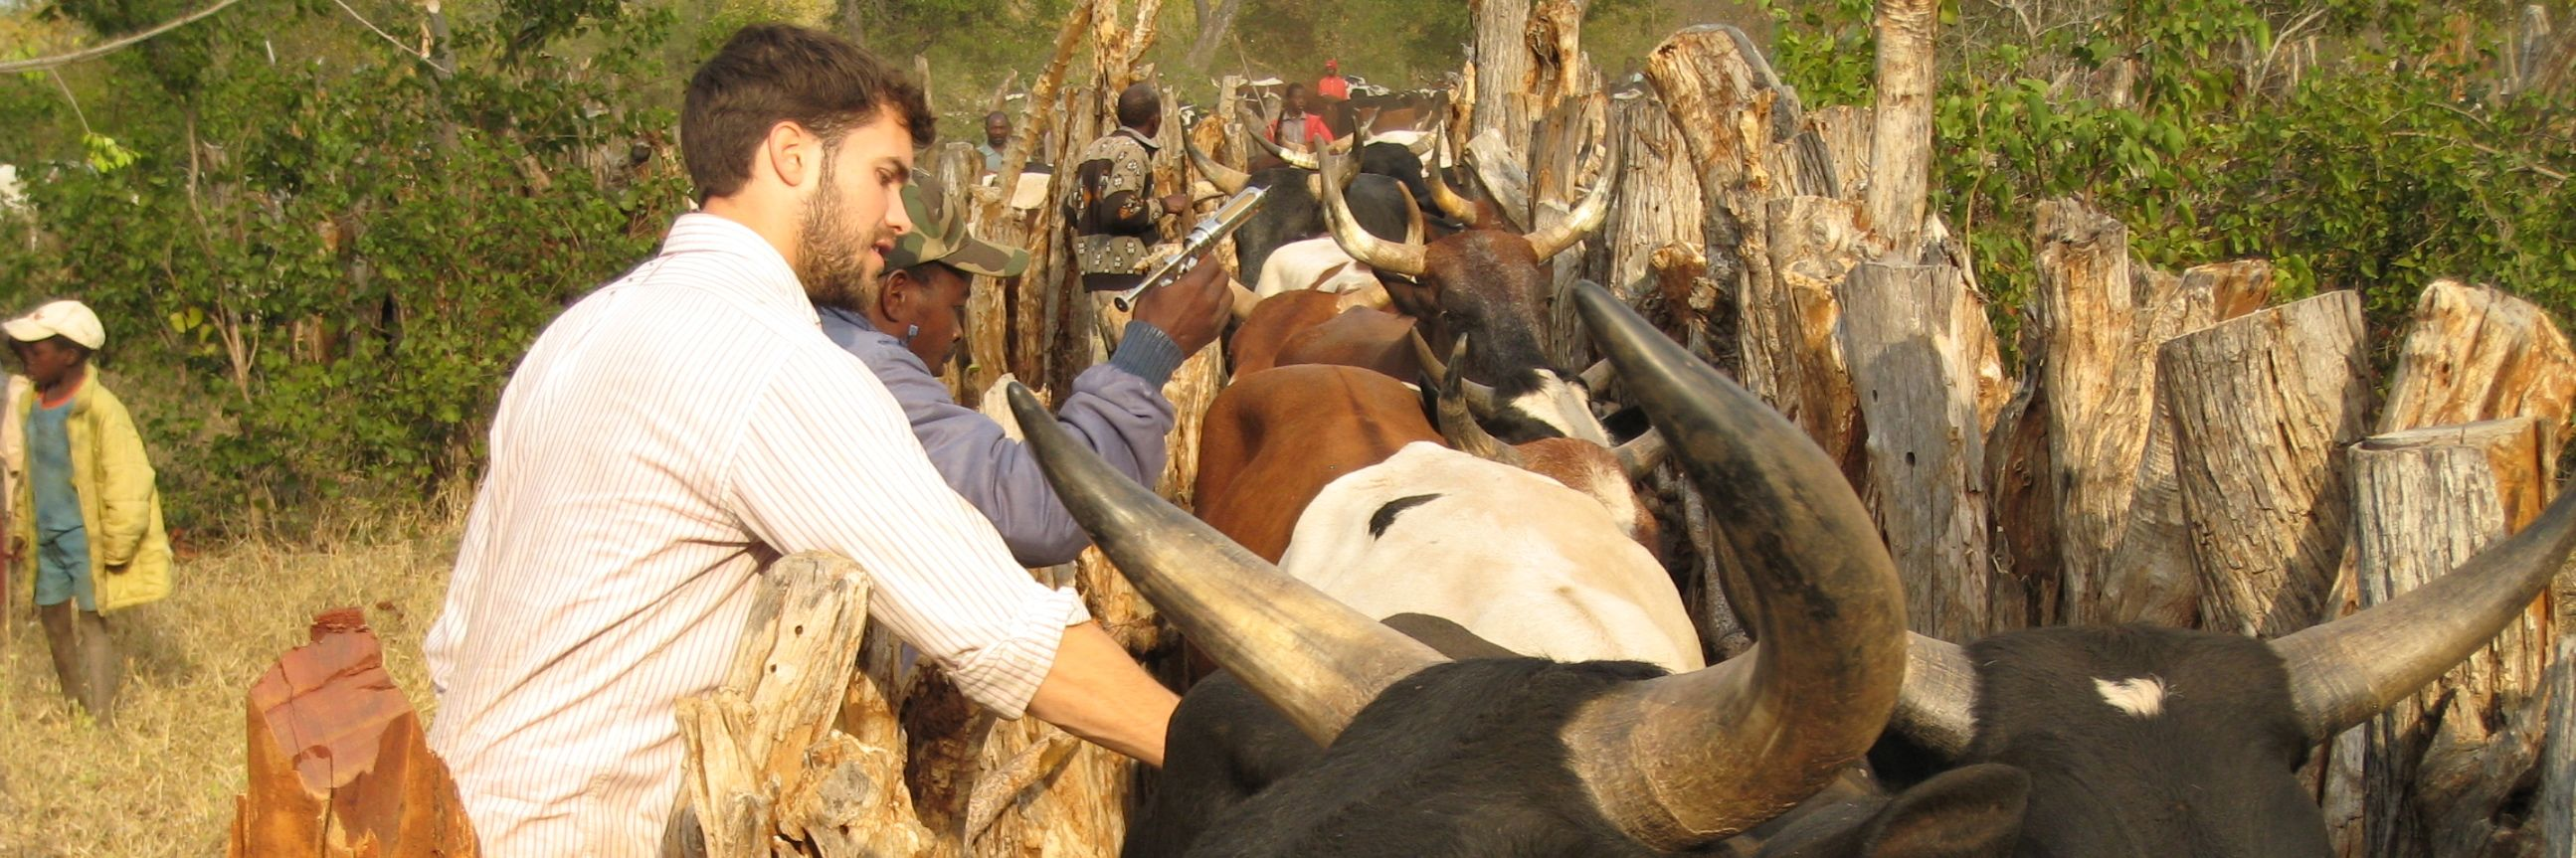 Elliott-Garber-vaccinating-cattle-Mozambique